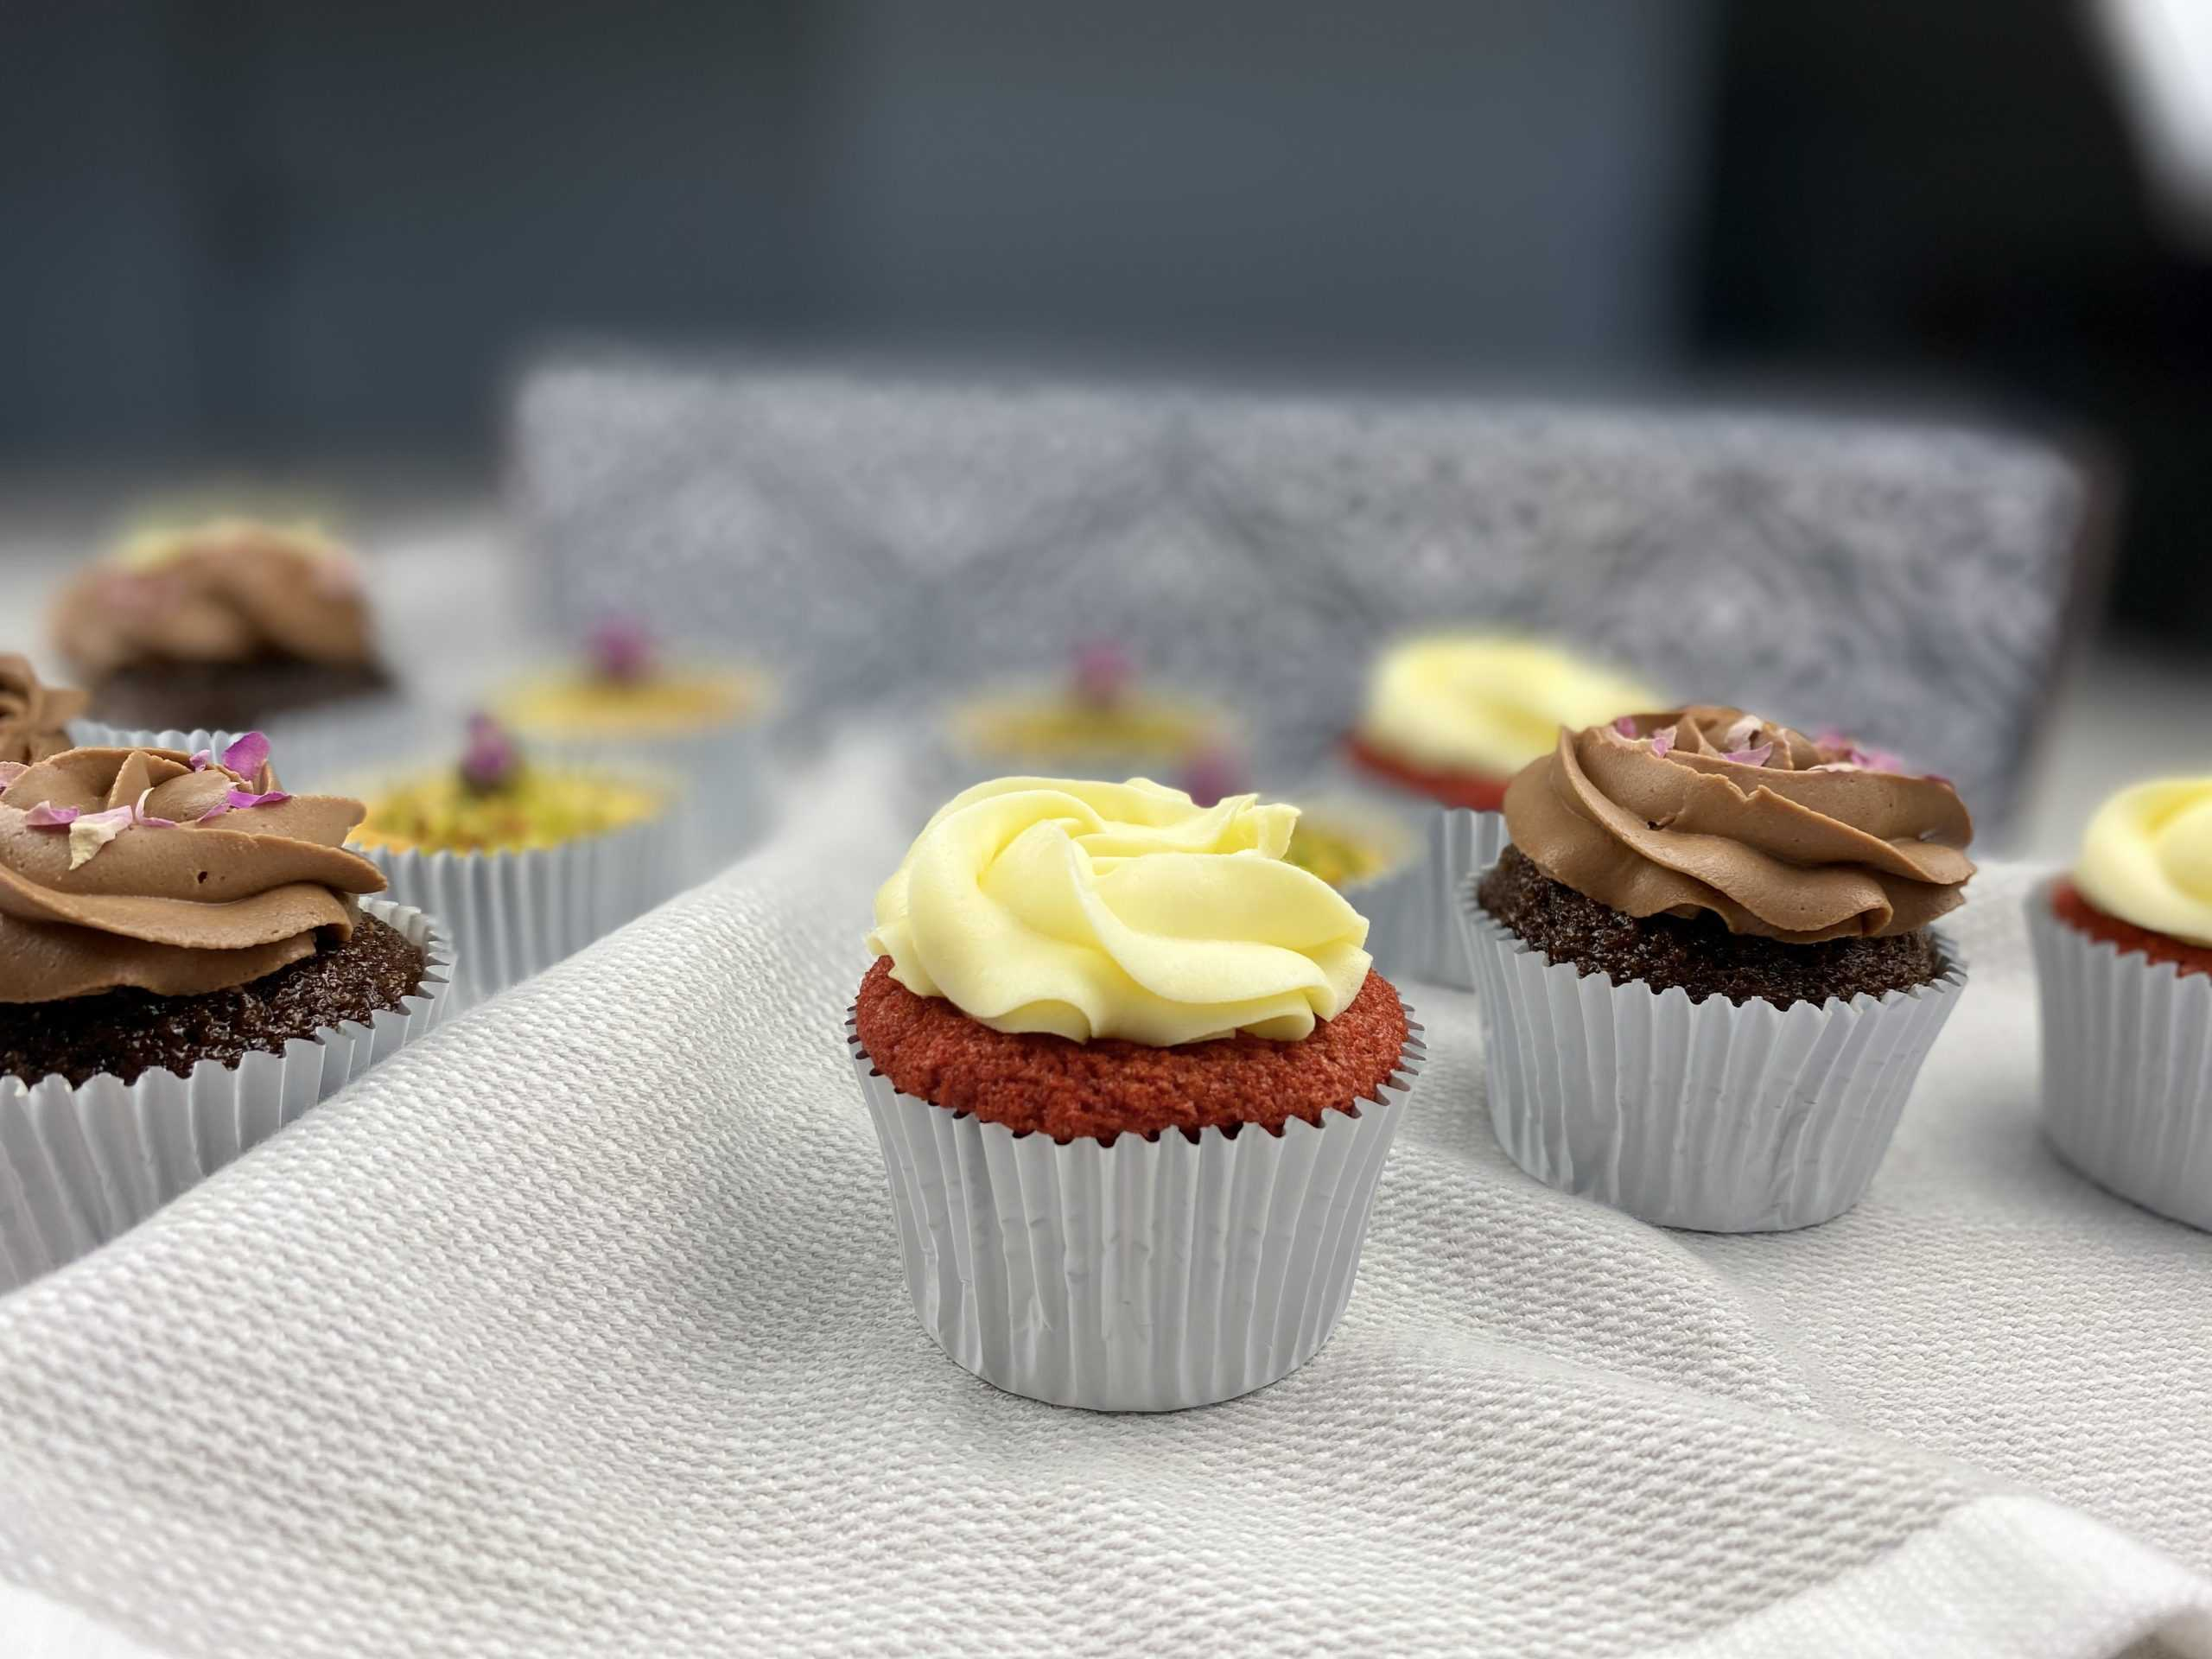 Some Tips for Baking the BEST Cupcakes